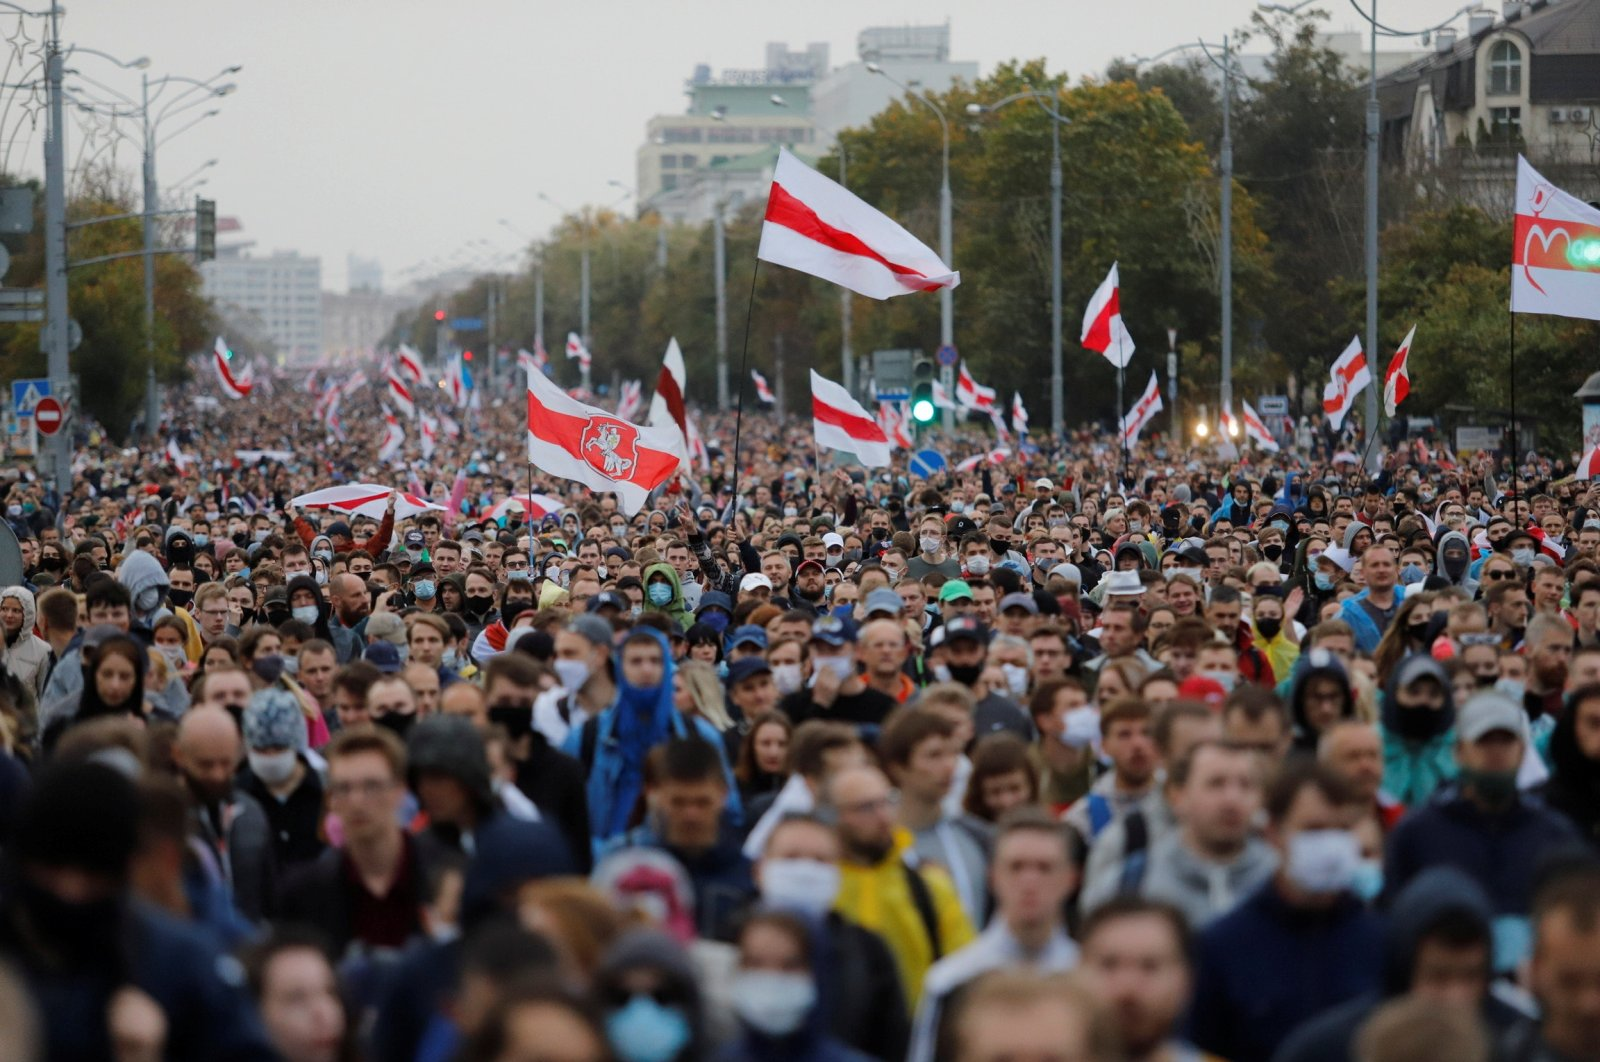 People attend an opposition rally to reject the presidential election results and to protest against the inauguration of Belarusian President Alexander Lukashenko in Minsk, Belarus, Sept. 27, 2020. (Reuters Photo)